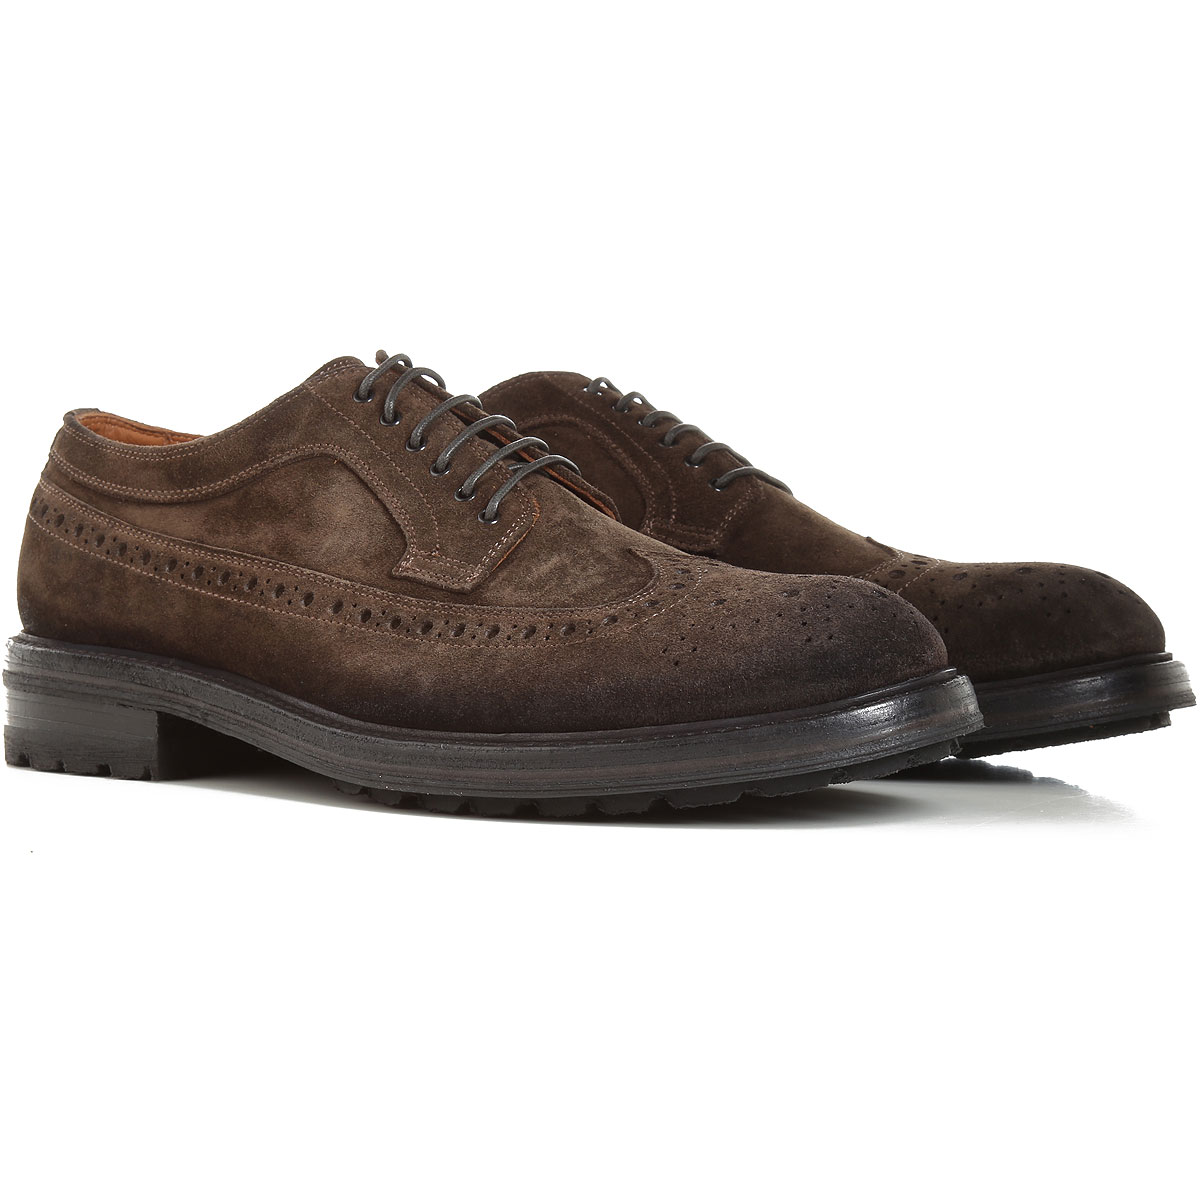 Pantanetti Lace Up Shoes for Men Oxfords, Derbies and Brogues On Sale, Dark Olive Green, Suede leather, 2019, 10.5 8 9